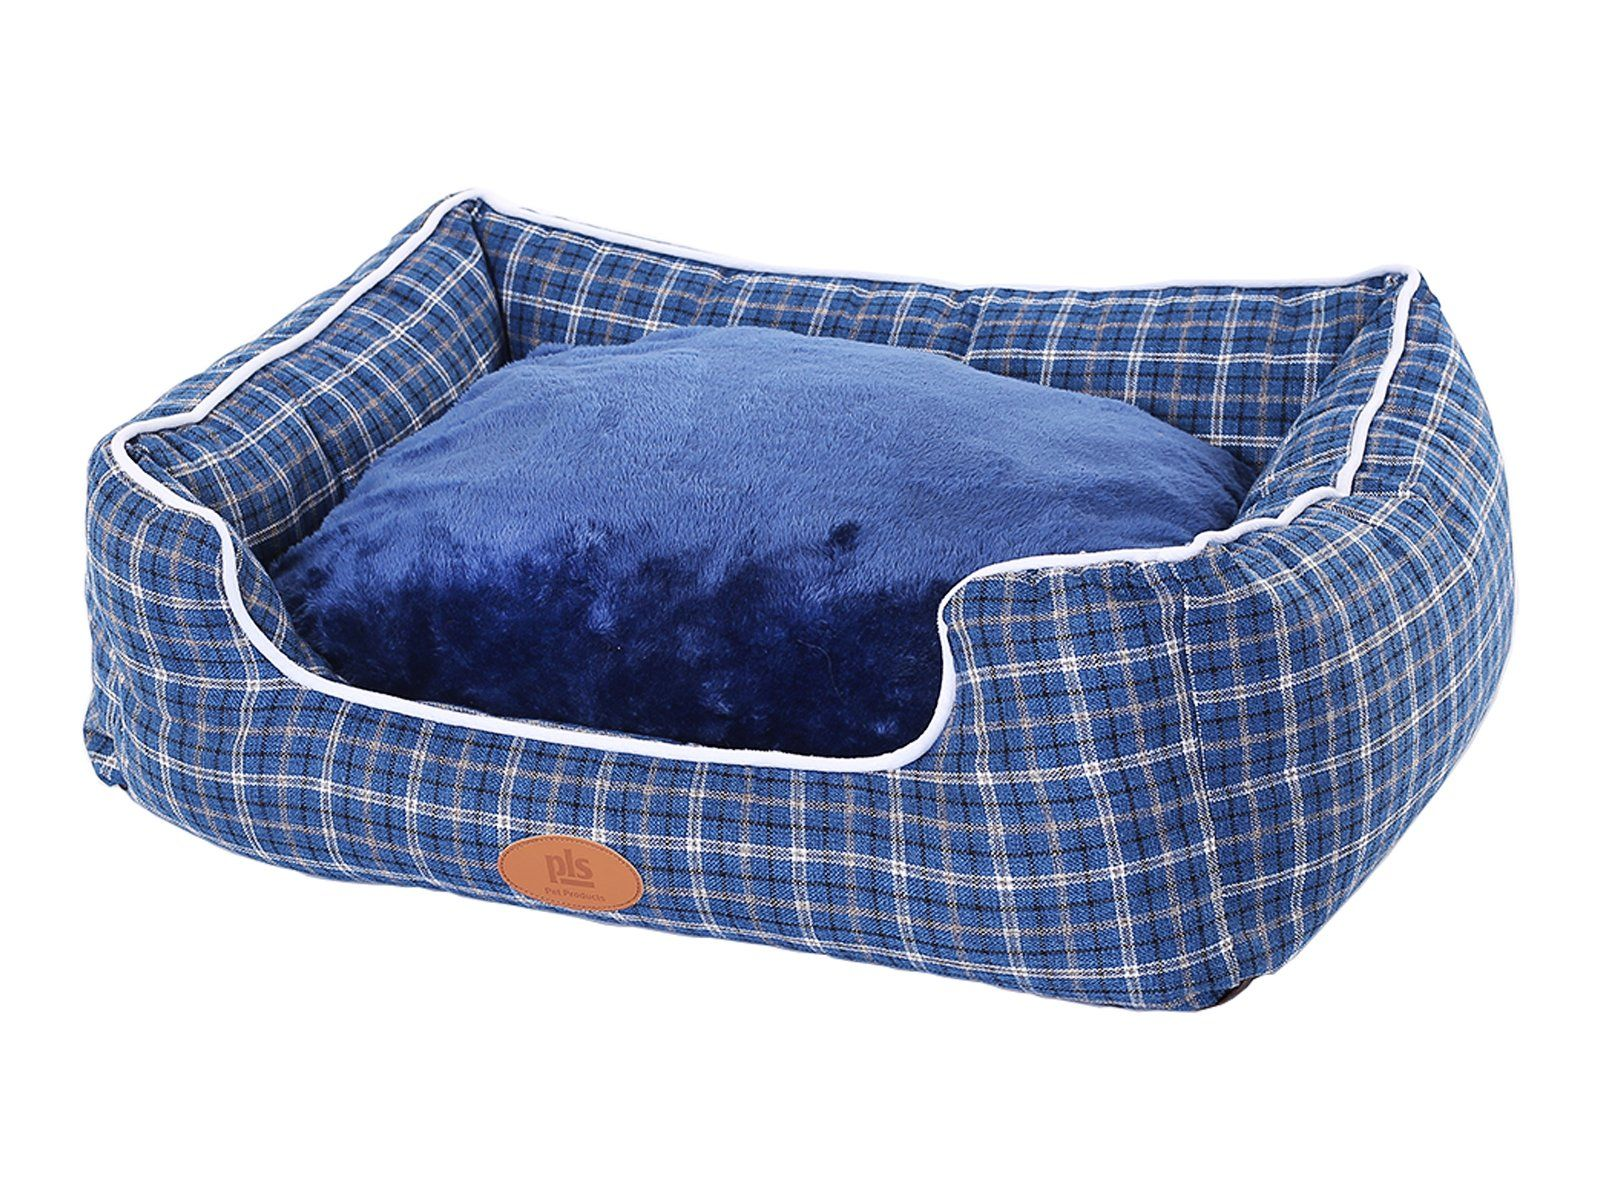 New Pls Birdsong Trellis Bolster Plaid Large Dog Bed Pet Bed Cat Bed Blue Large Removable Cover Completely Washable Do Dog Bed Dog Couch Bed Washable Dog Bed Pet bed with removable cover